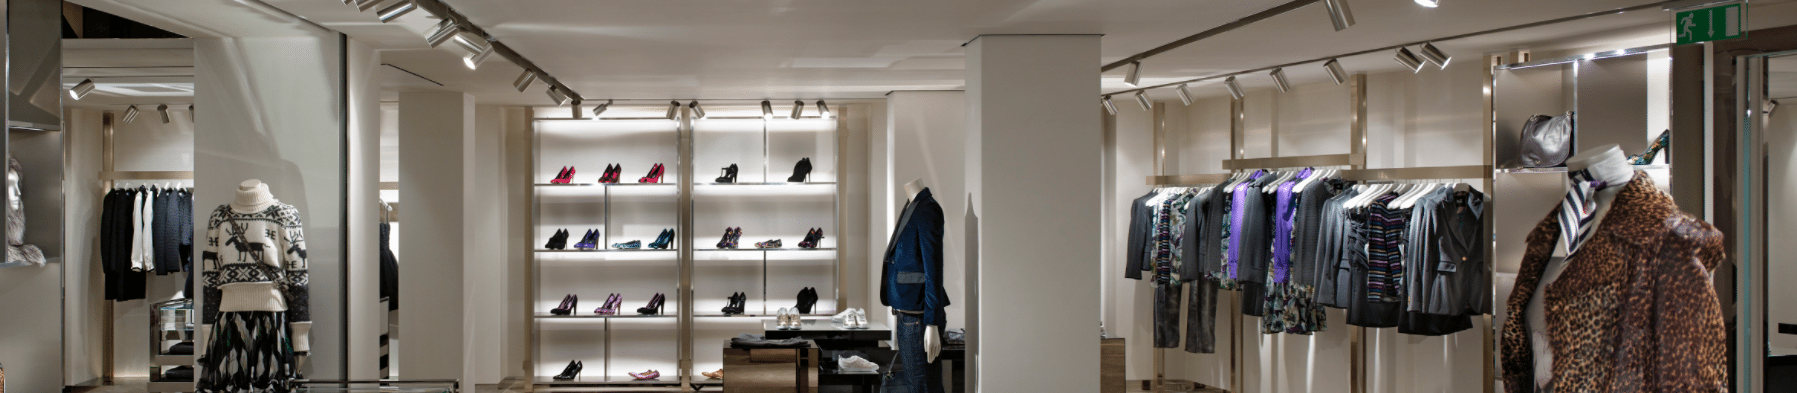 image inside a clothing store with racks of clothes and shoes